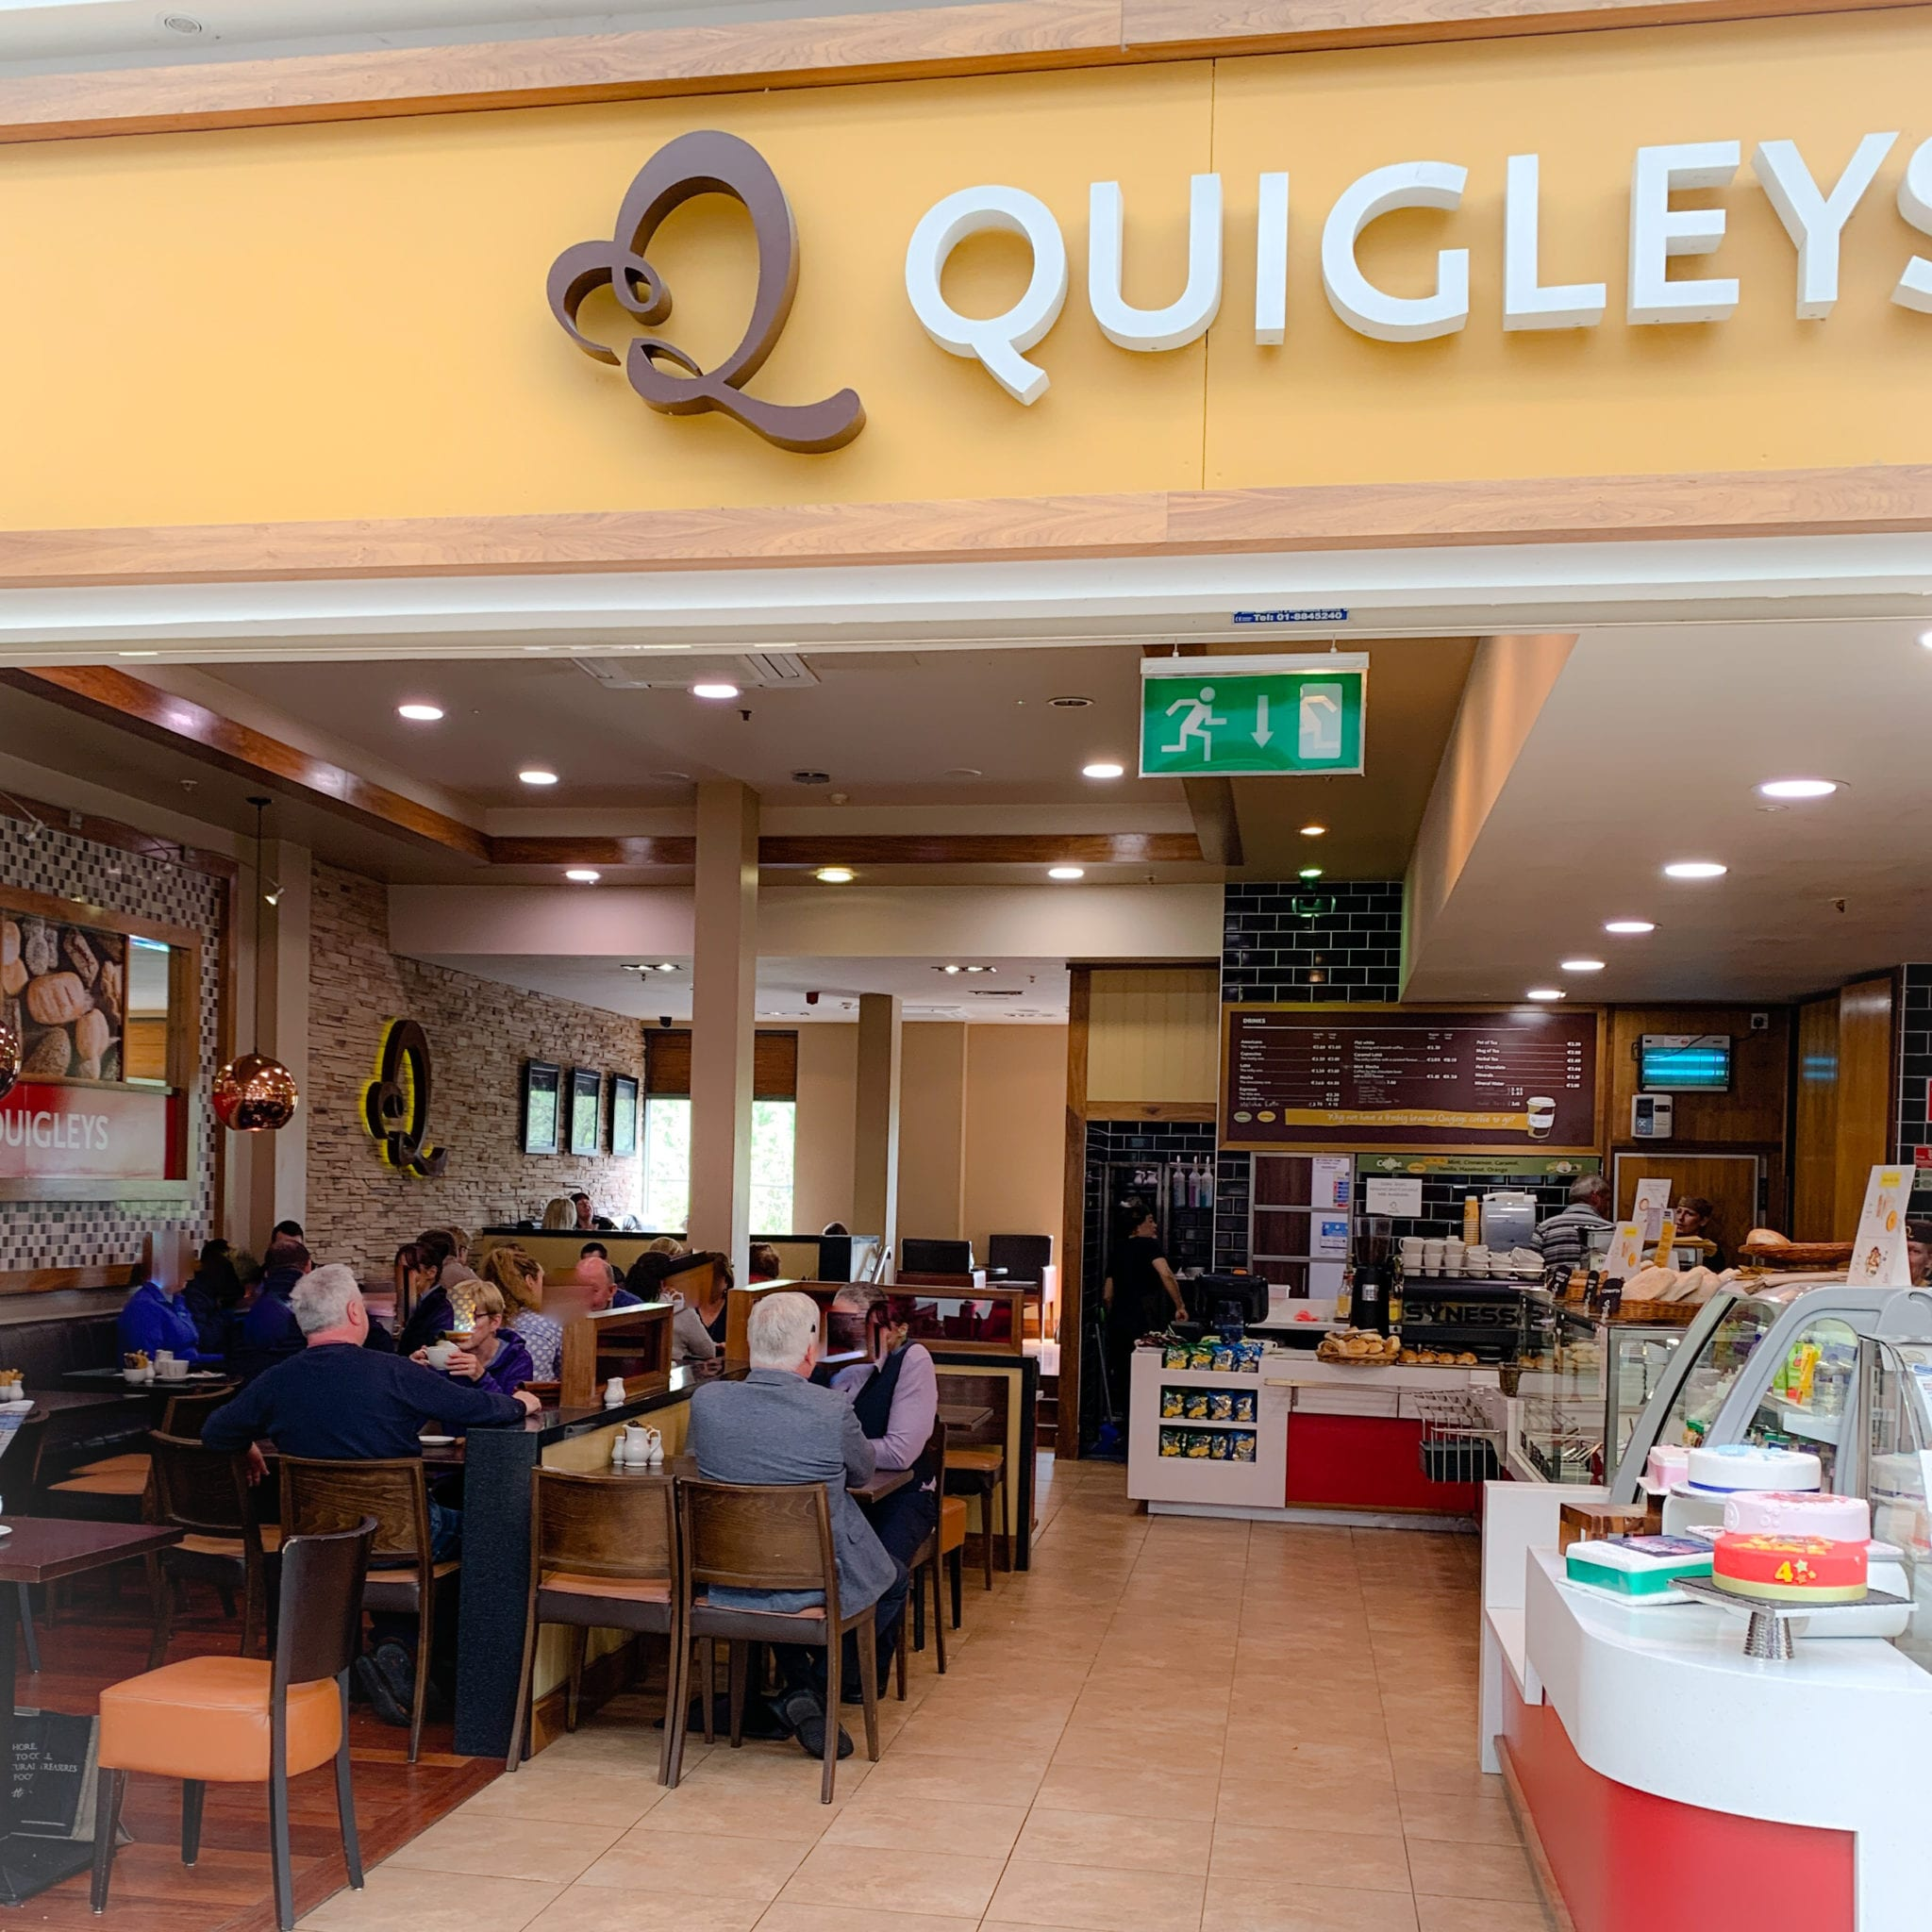 Quigleys cafe Thurles Shopping Centre Tipperary